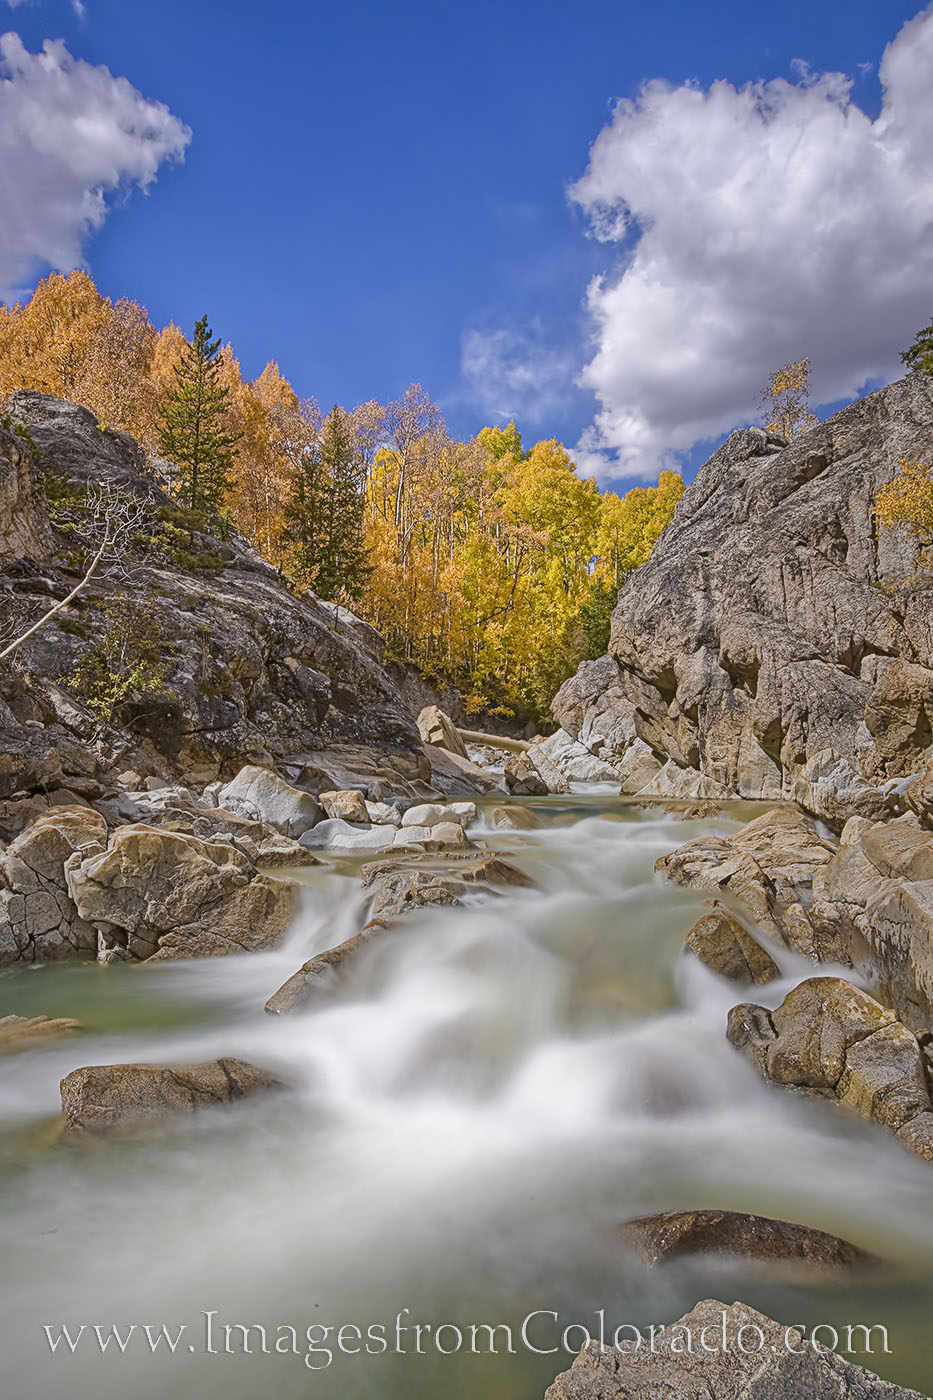 With water flowing down from high elevations, the aspen and cottonwood show their brillian golden fall colors along Lake Creek...